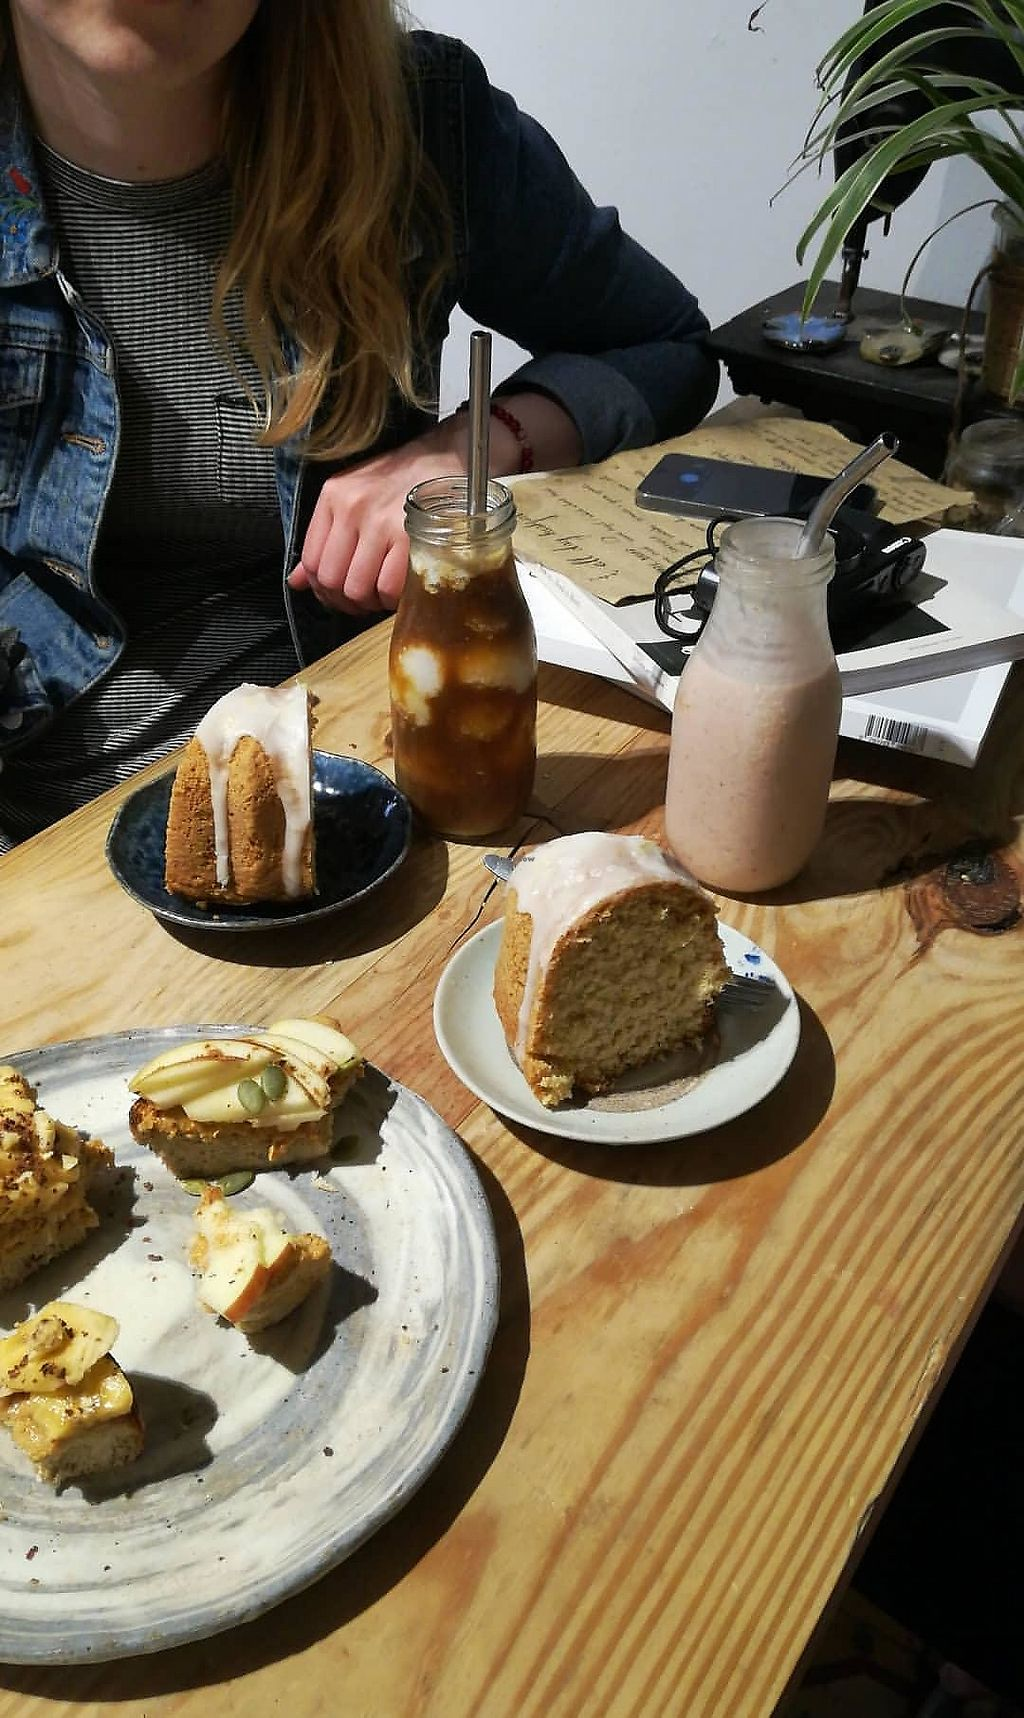 "Photo of La Studio  by <a href=""/members/profile/MeganDev"">MeganDev</a> <br/>Lemon coconut cake, fruit toast, coconut coffee and strawberry milkshake.  <br/> March 26, 2018  - <a href='/contact/abuse/image/72278/376215'>Report</a>"